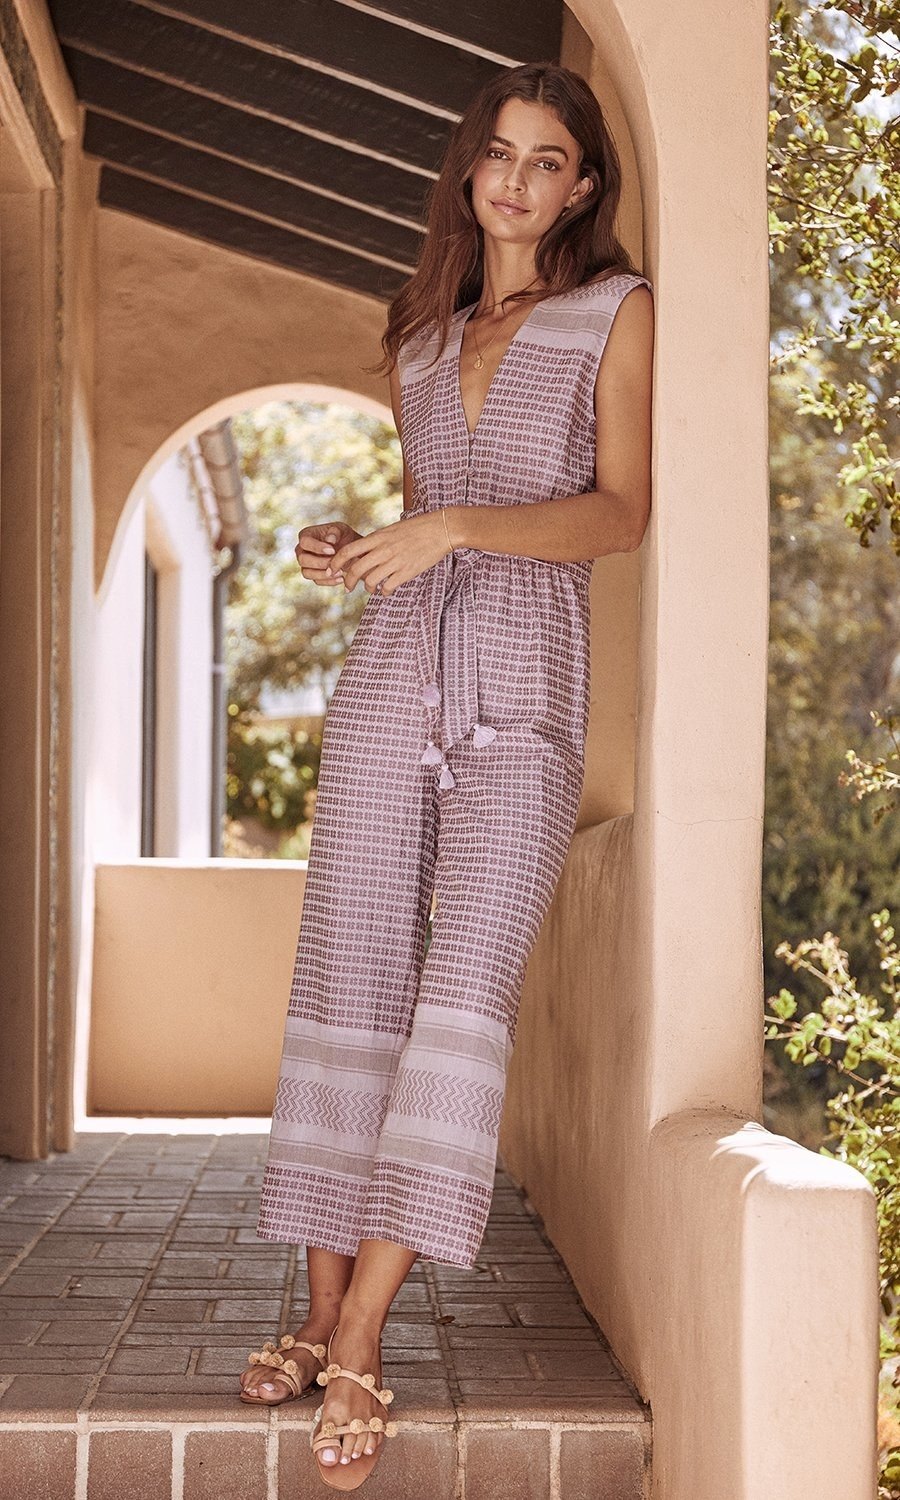 Model wearing the jumpsuit with a deep v-neck with buttons below it, tie waist, and wide legs that go to mid-calf in a pink with a graphic print